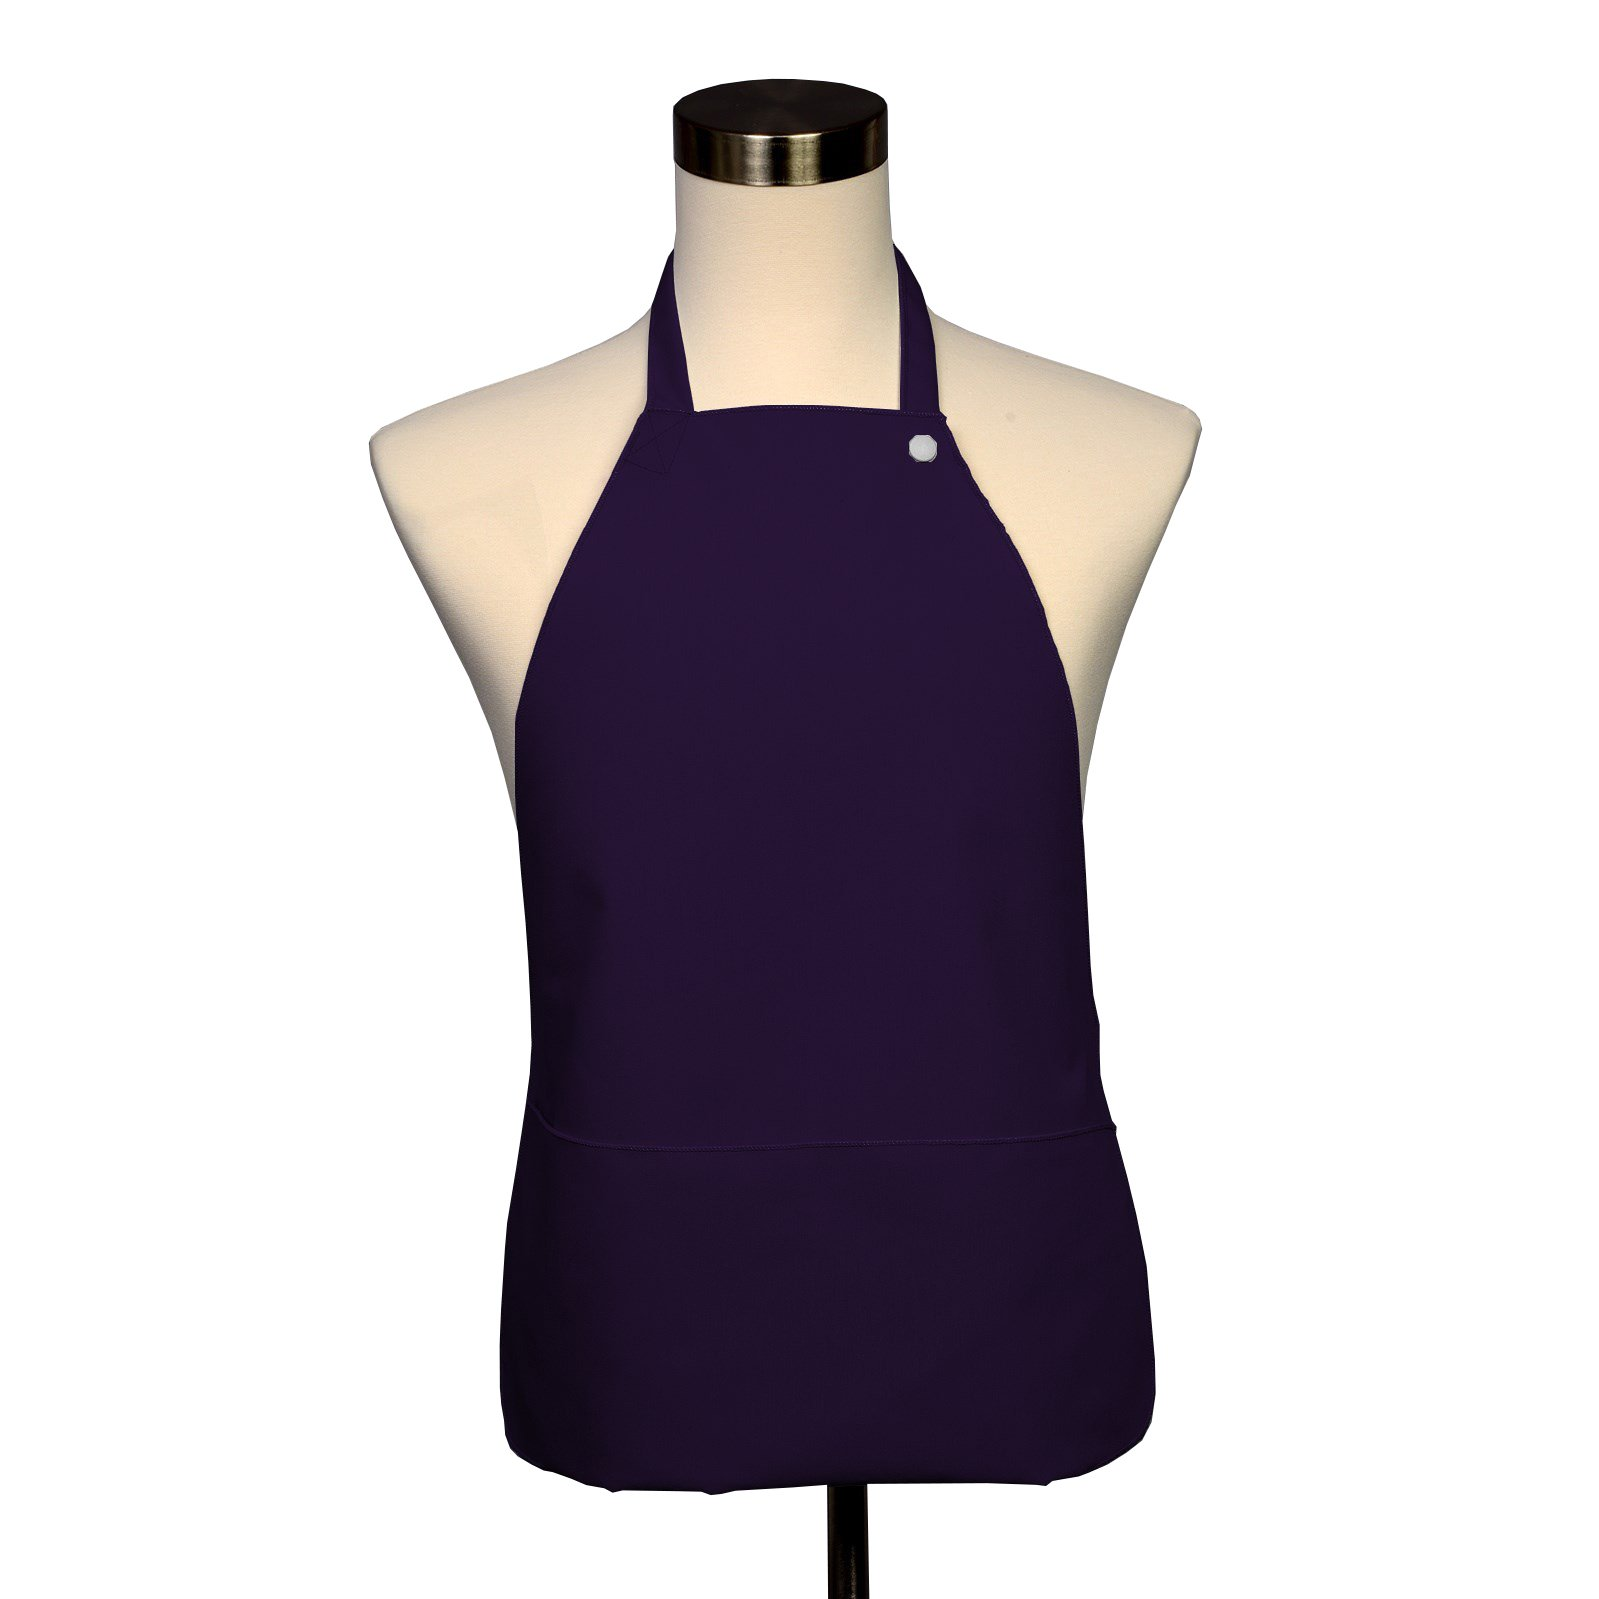 Adult Bib 10 Pack - Covered with Care Assorted Colors Available! (Purple)